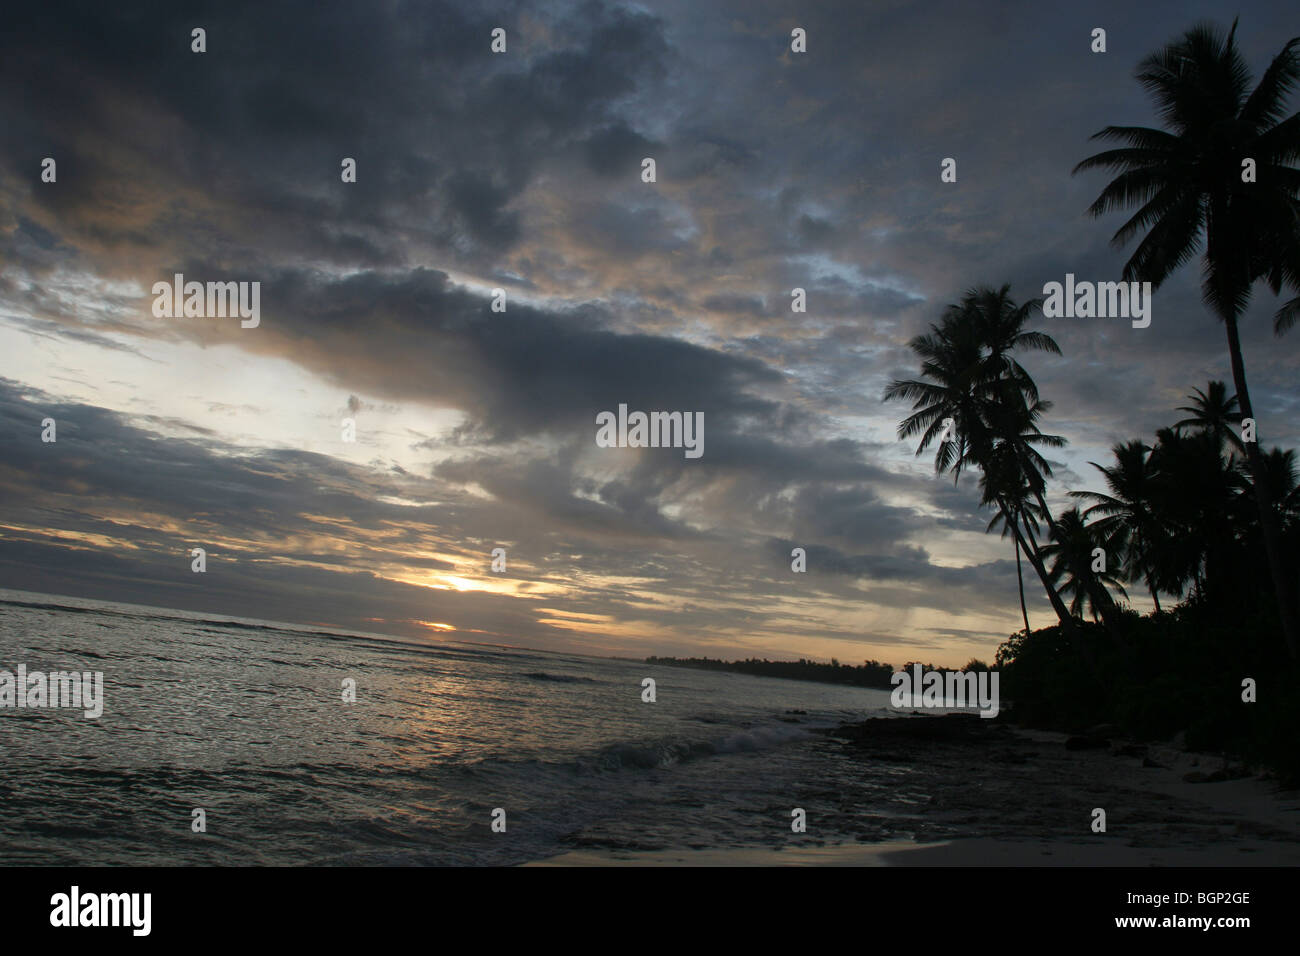 Dusk on the beach on the island of Kiribati in the Pacific Ocean - Stock Image